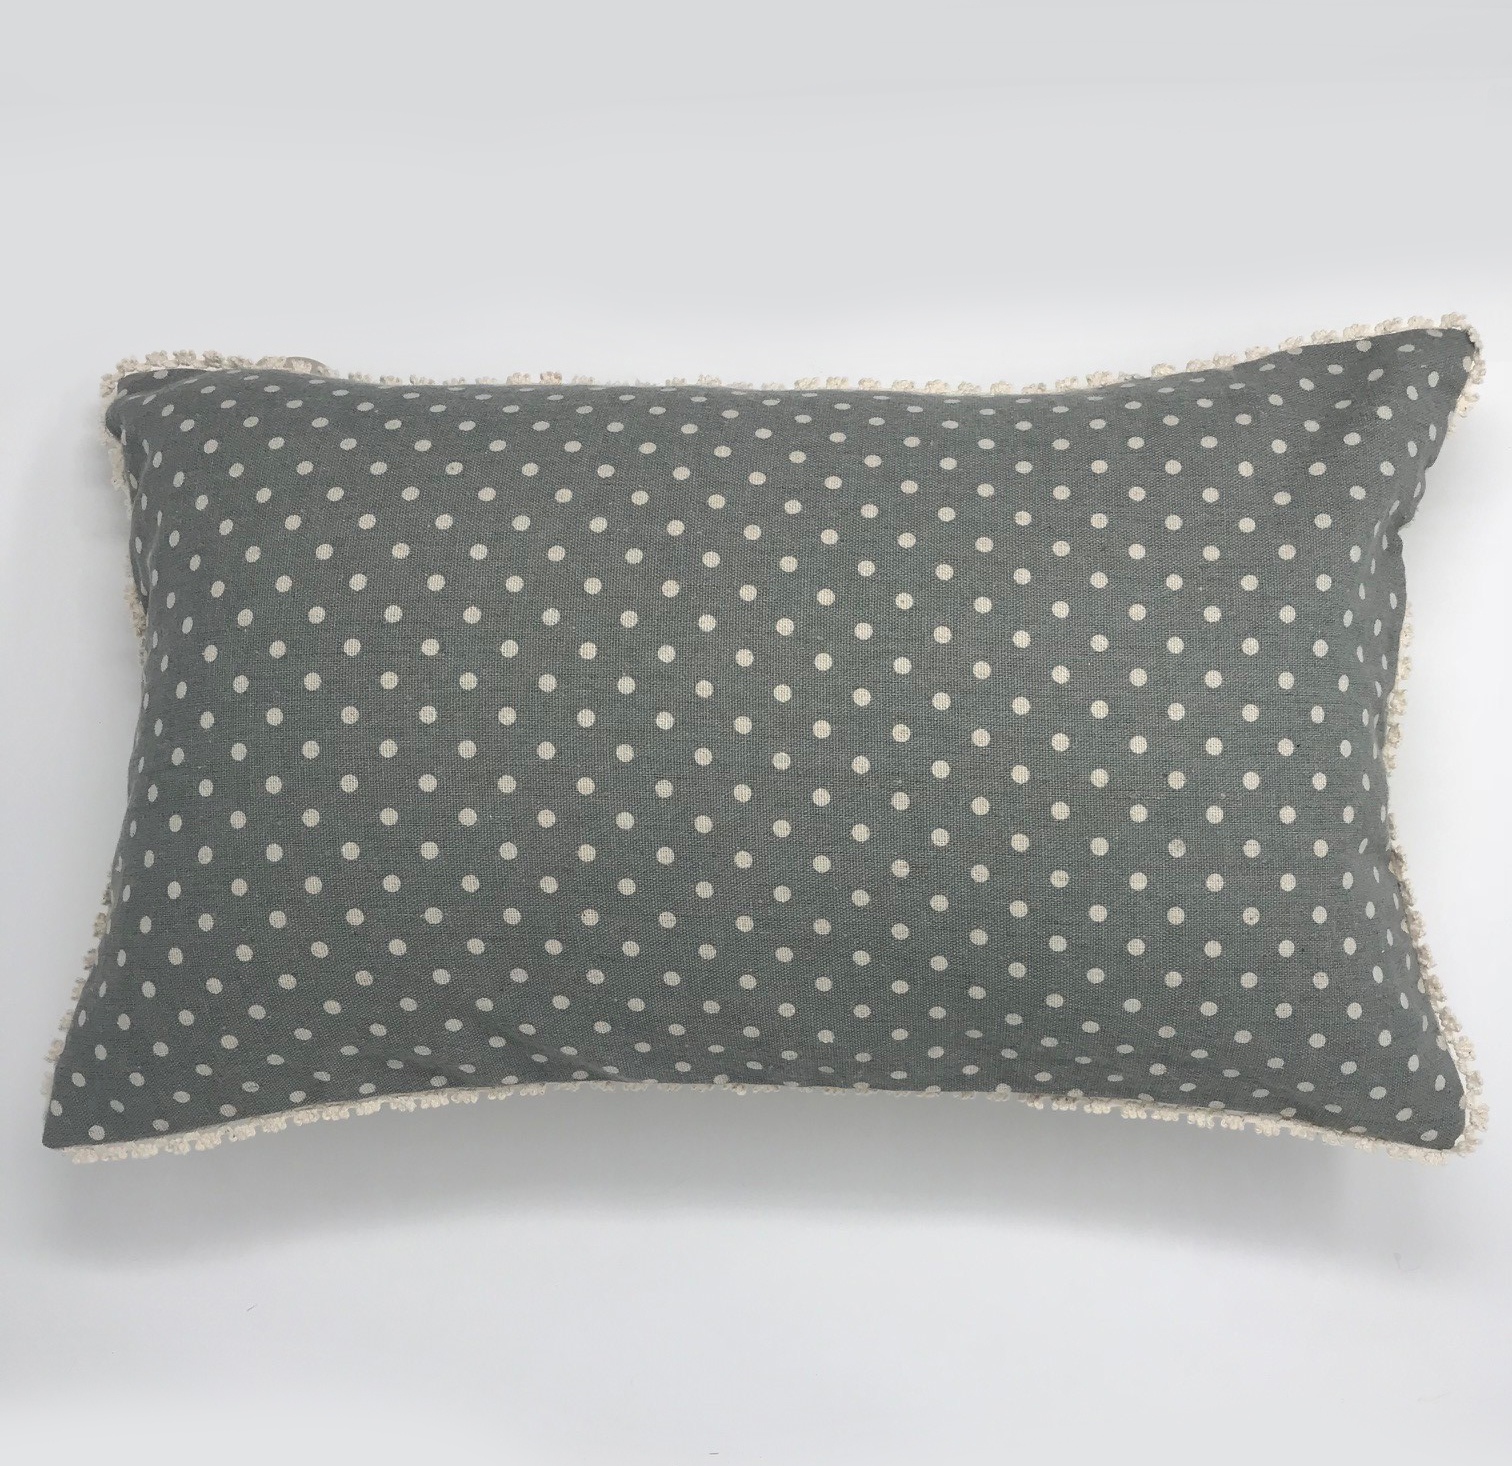 Vintage Reversable Polka Dot Cushion Cover